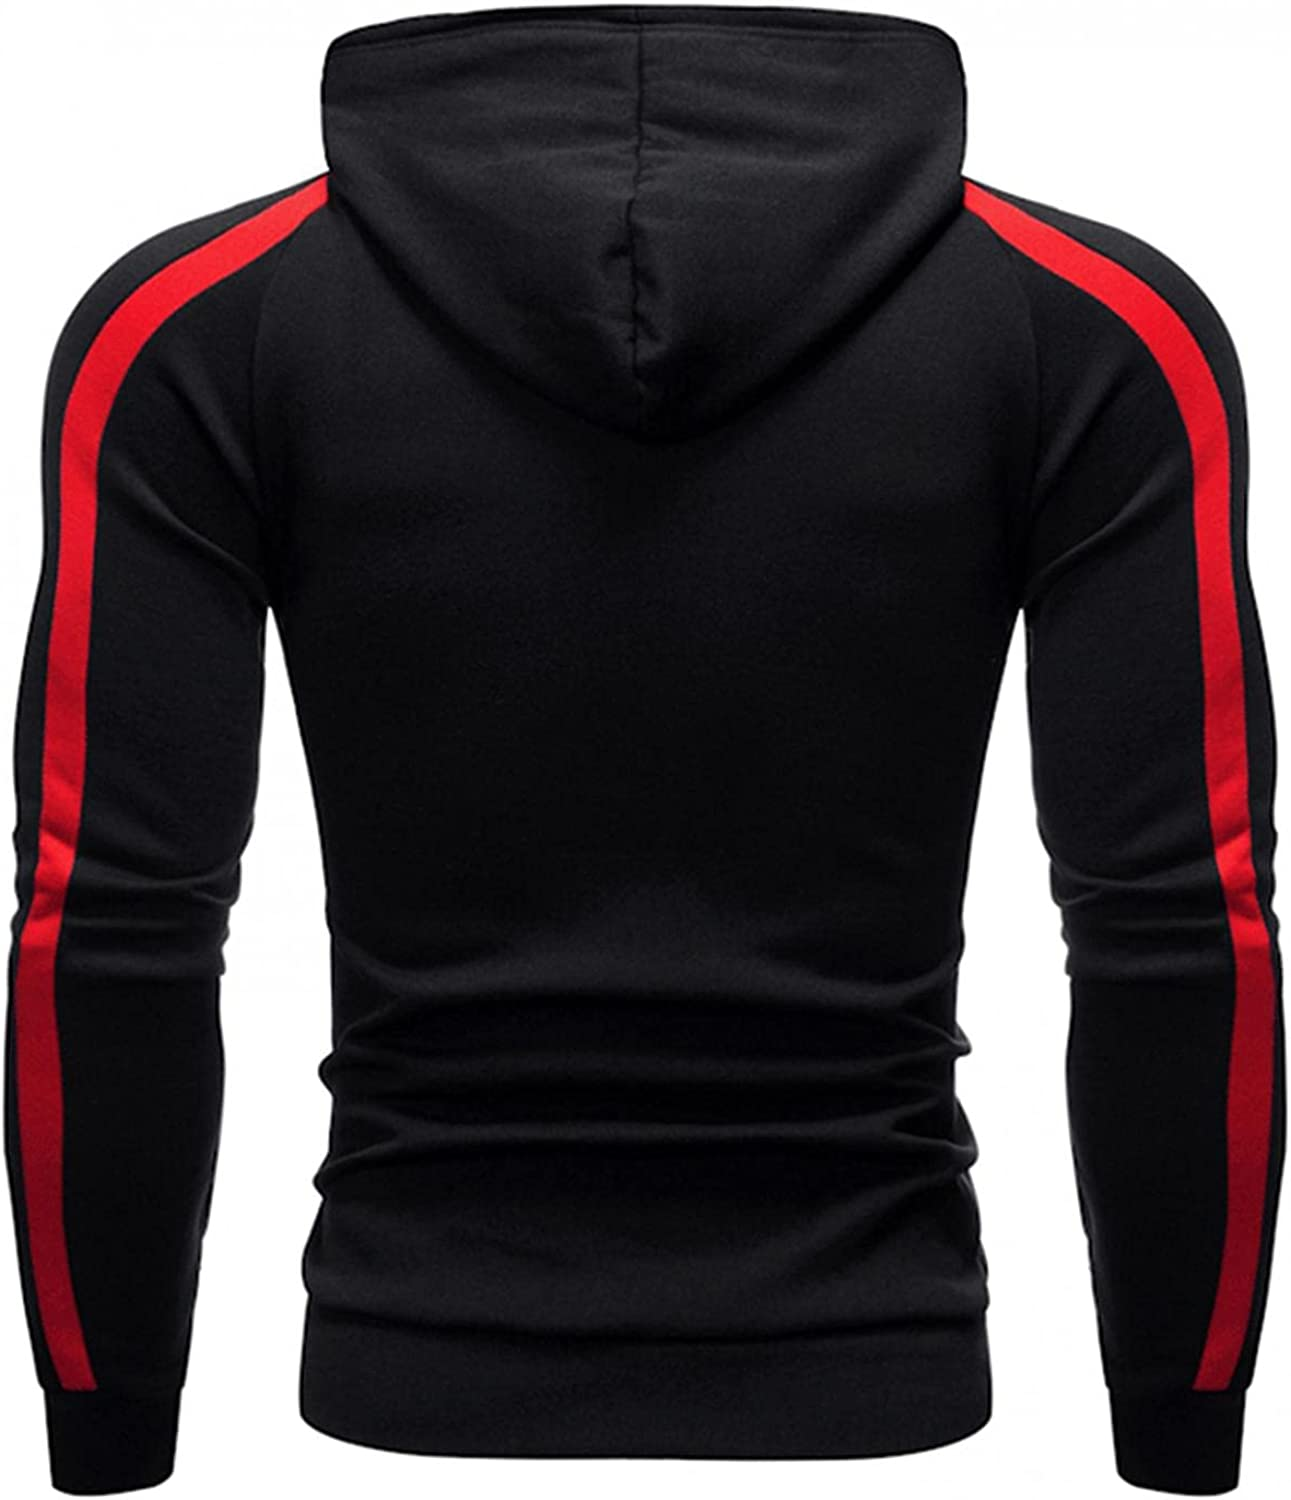 Hoodies for Men Men's Autumn Winter Casual Long Sleeve Sports Hooded Tight Top Fashion Hoodies & Sweatshirts Blouse